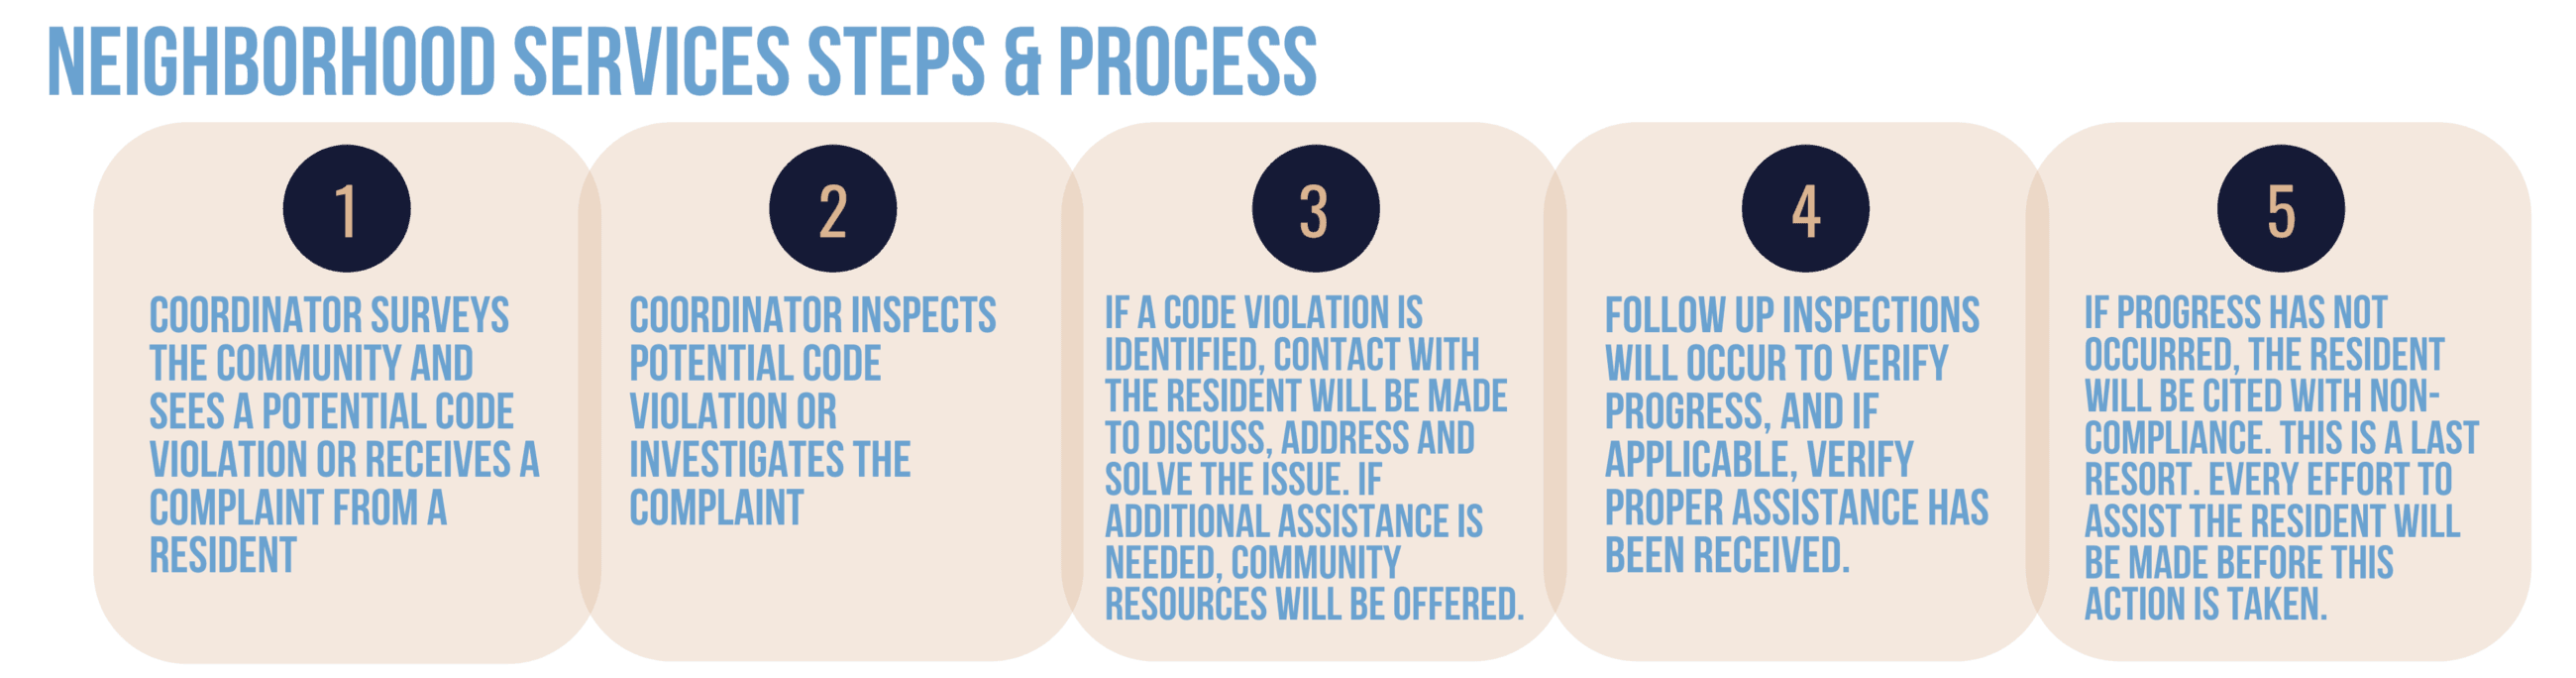 Neighborhood Services Steps and Process